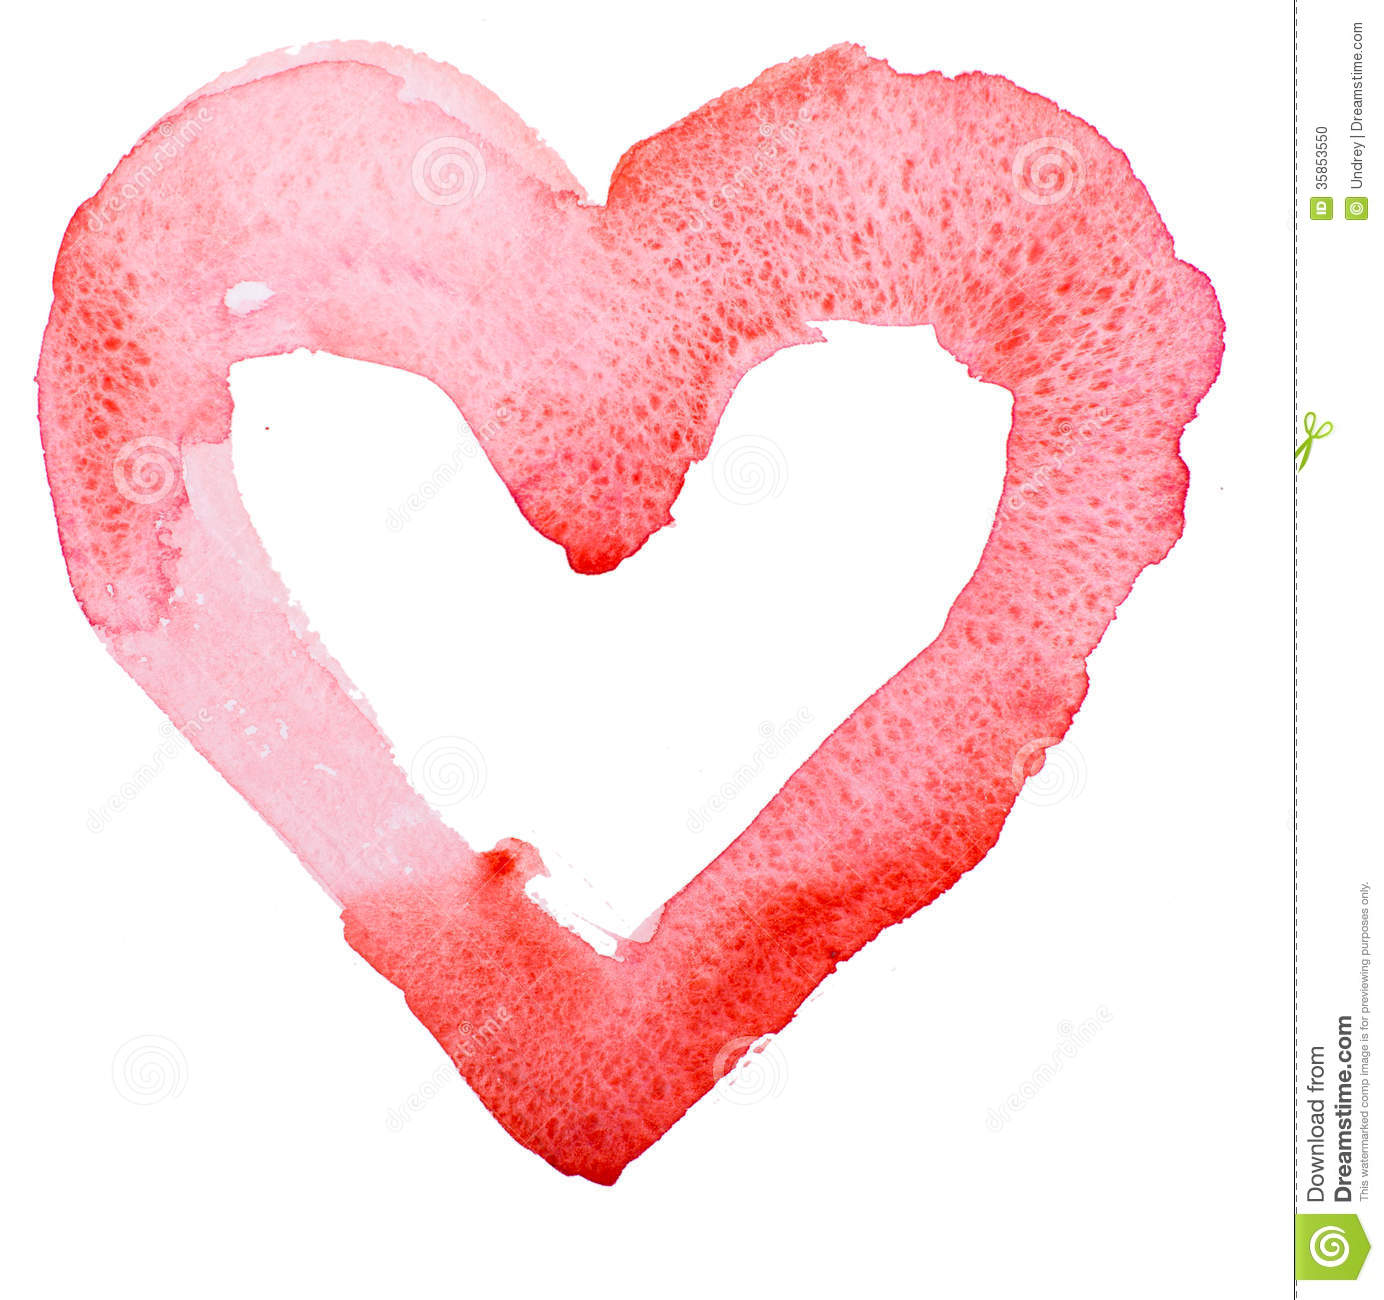 Watercolor Heart Concept Love Relationship Stock